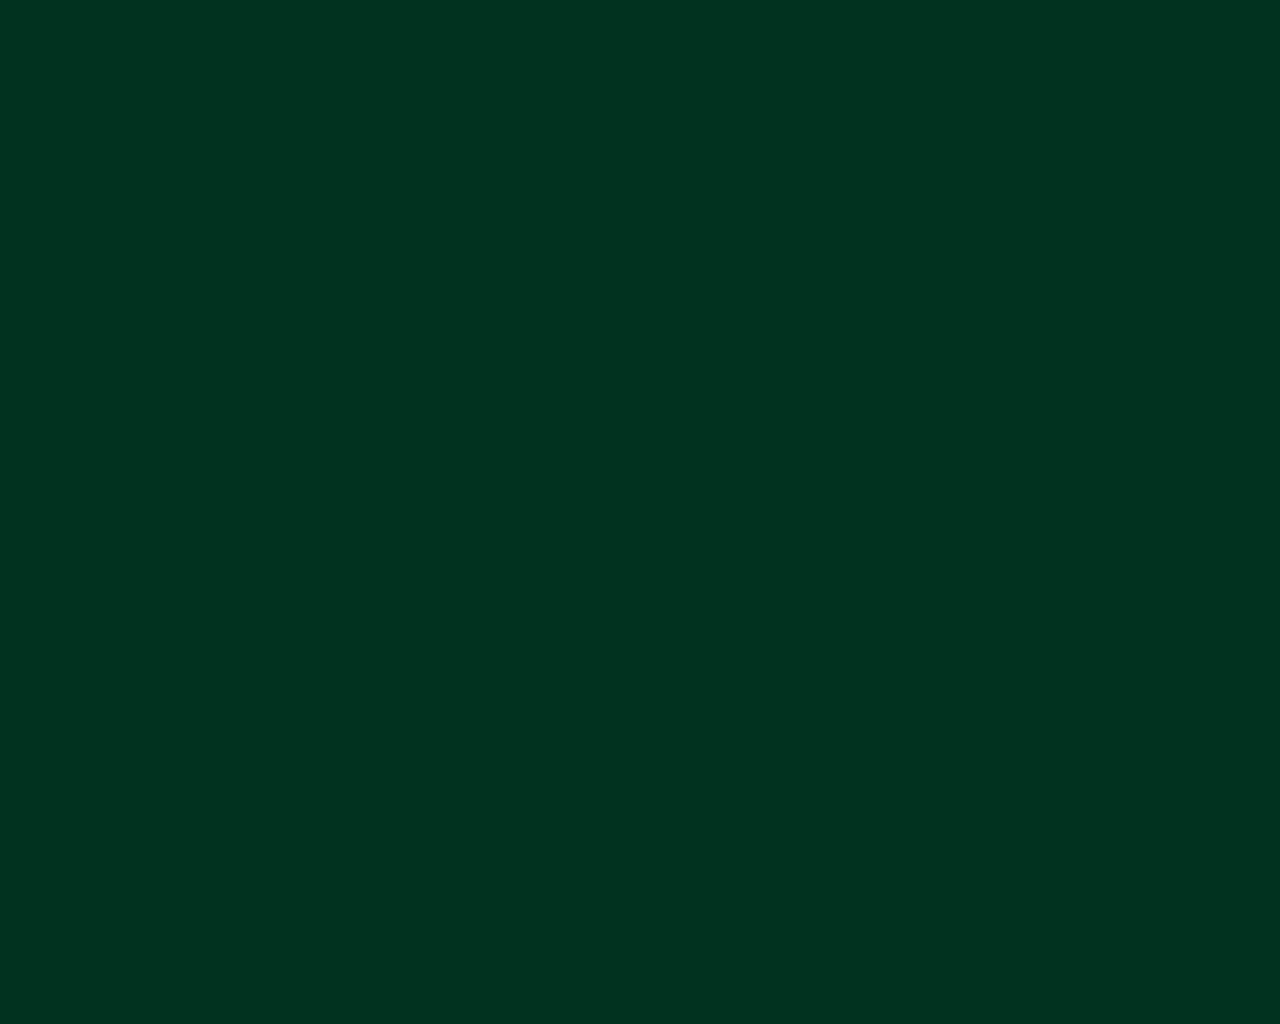 1280x1024 Dark Green Solid Color Background